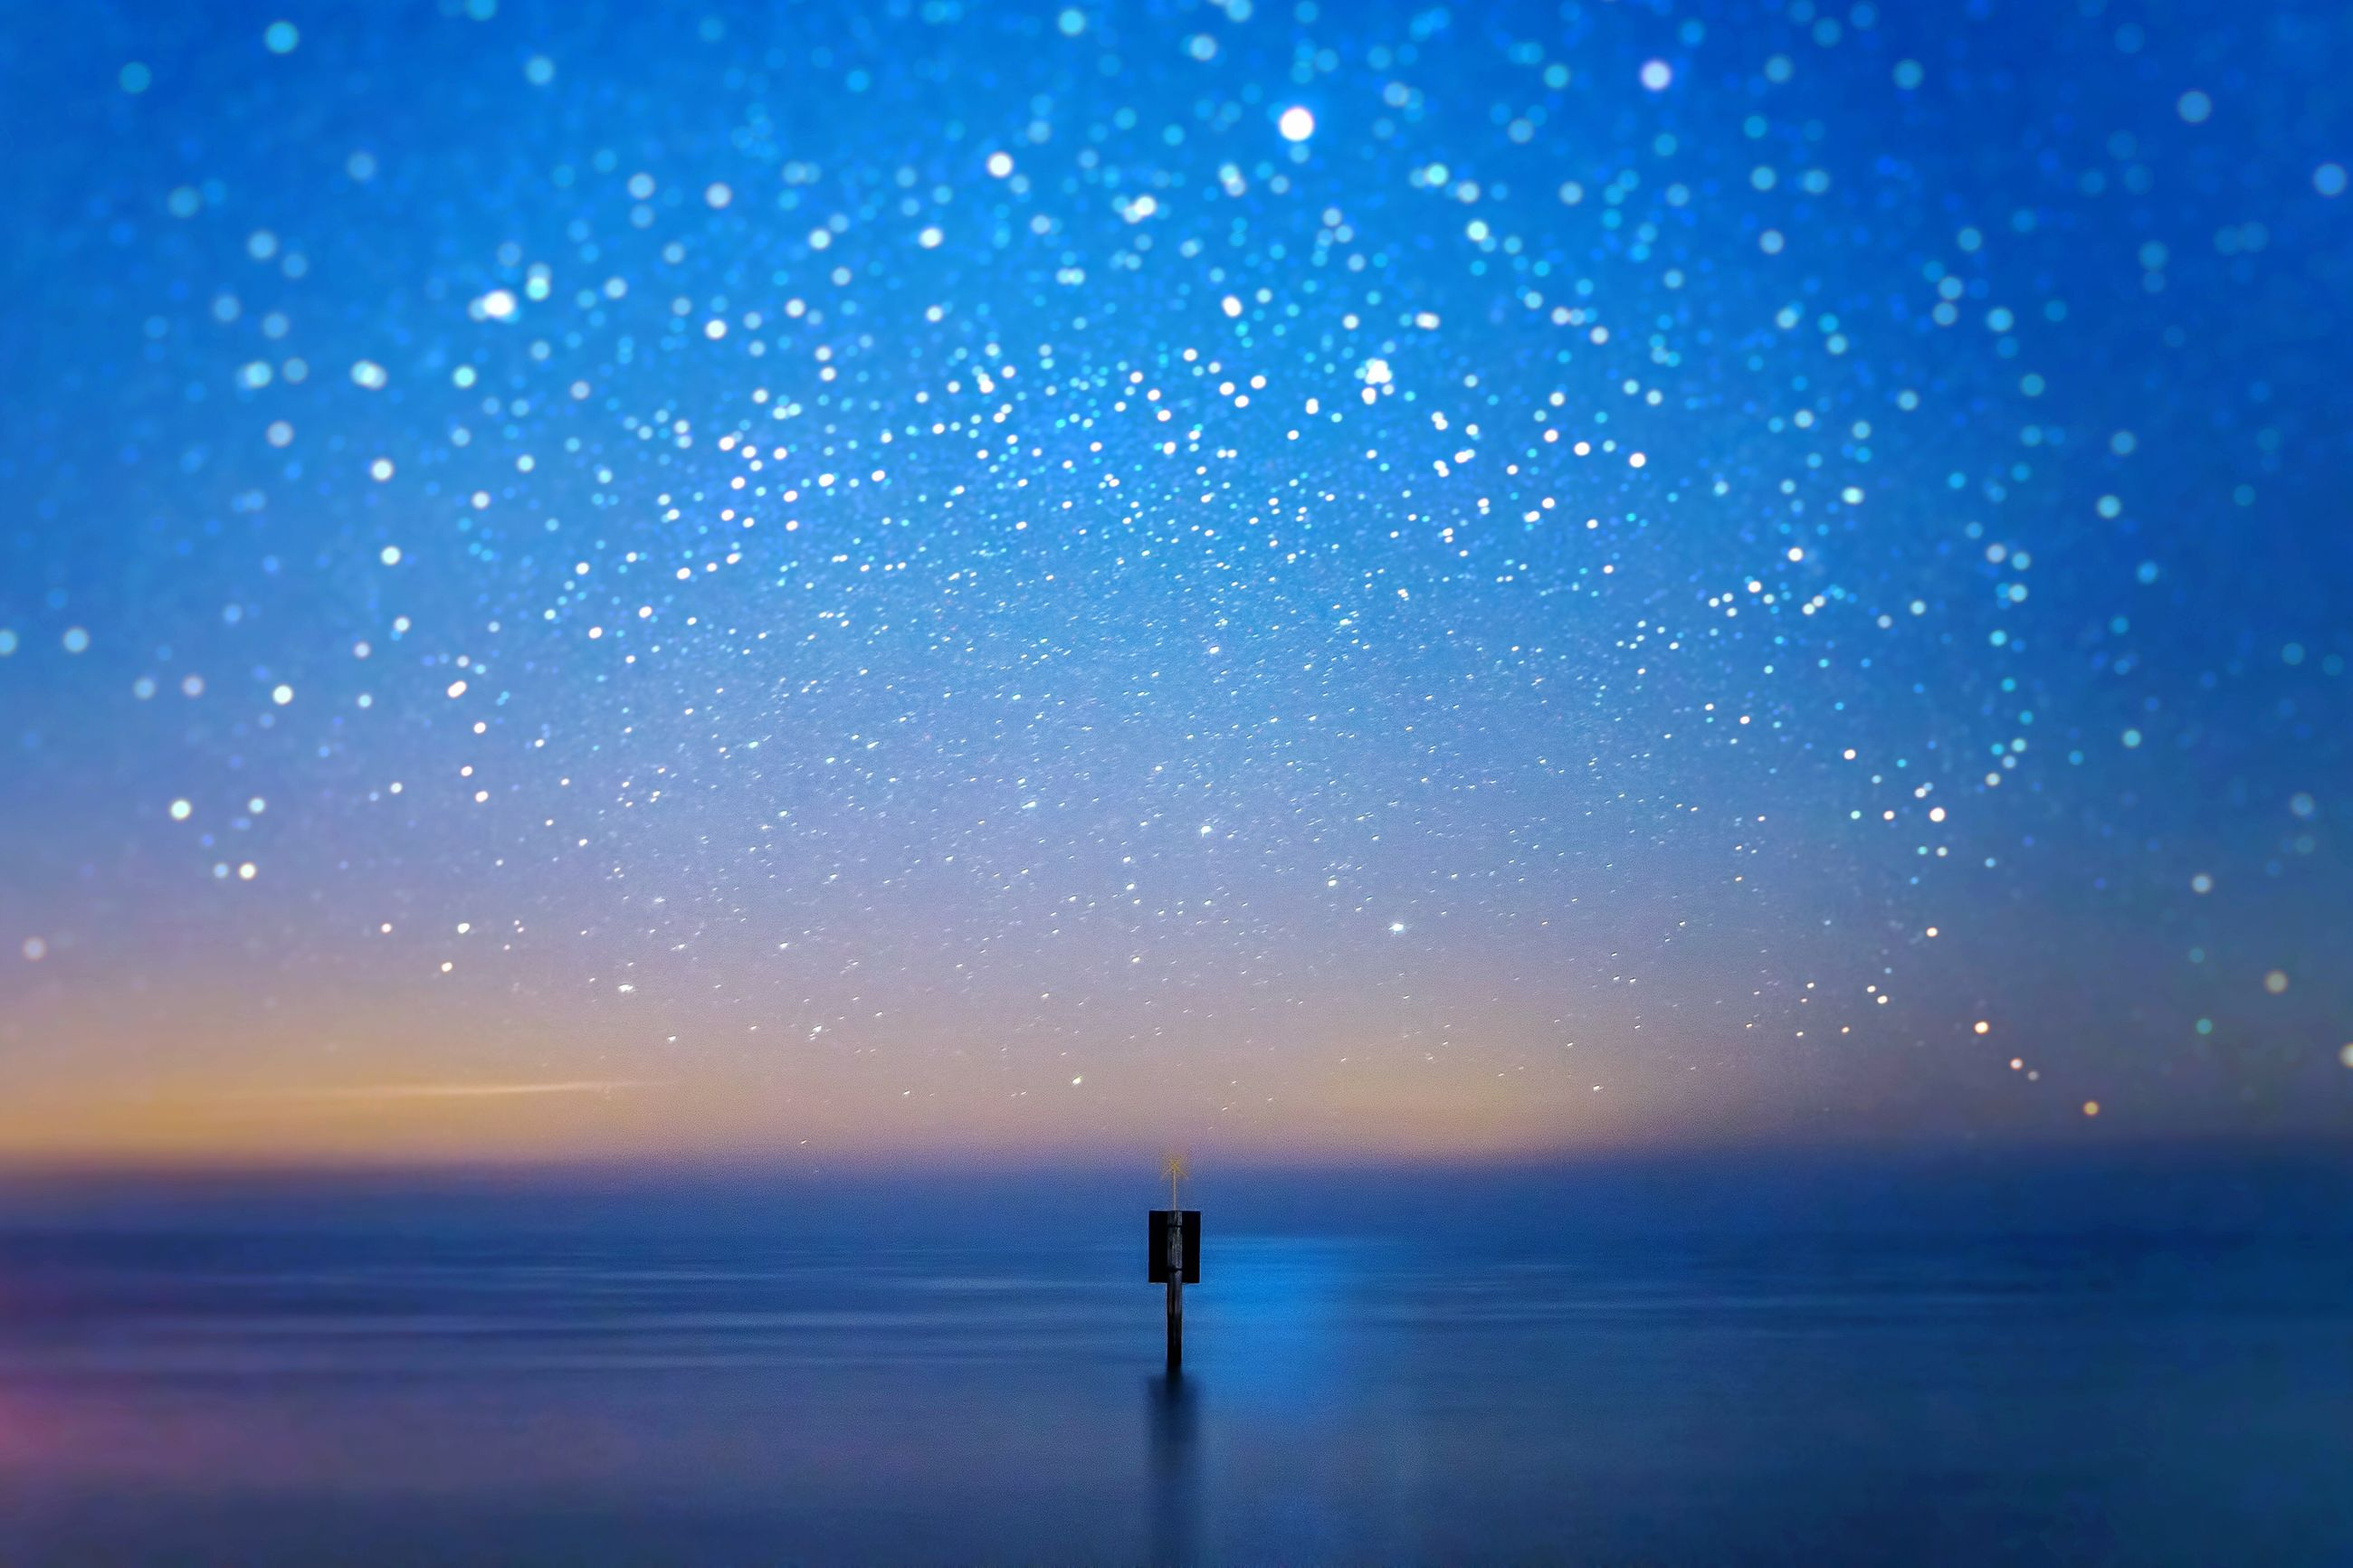 sky, sea, blue, night, silhouette, scenics, star field, nature, sunset, outdoors, beauty in nature, horizon over water, tranquil scene, constellation, astronomy, beach, star - space, water, people, space, galaxy